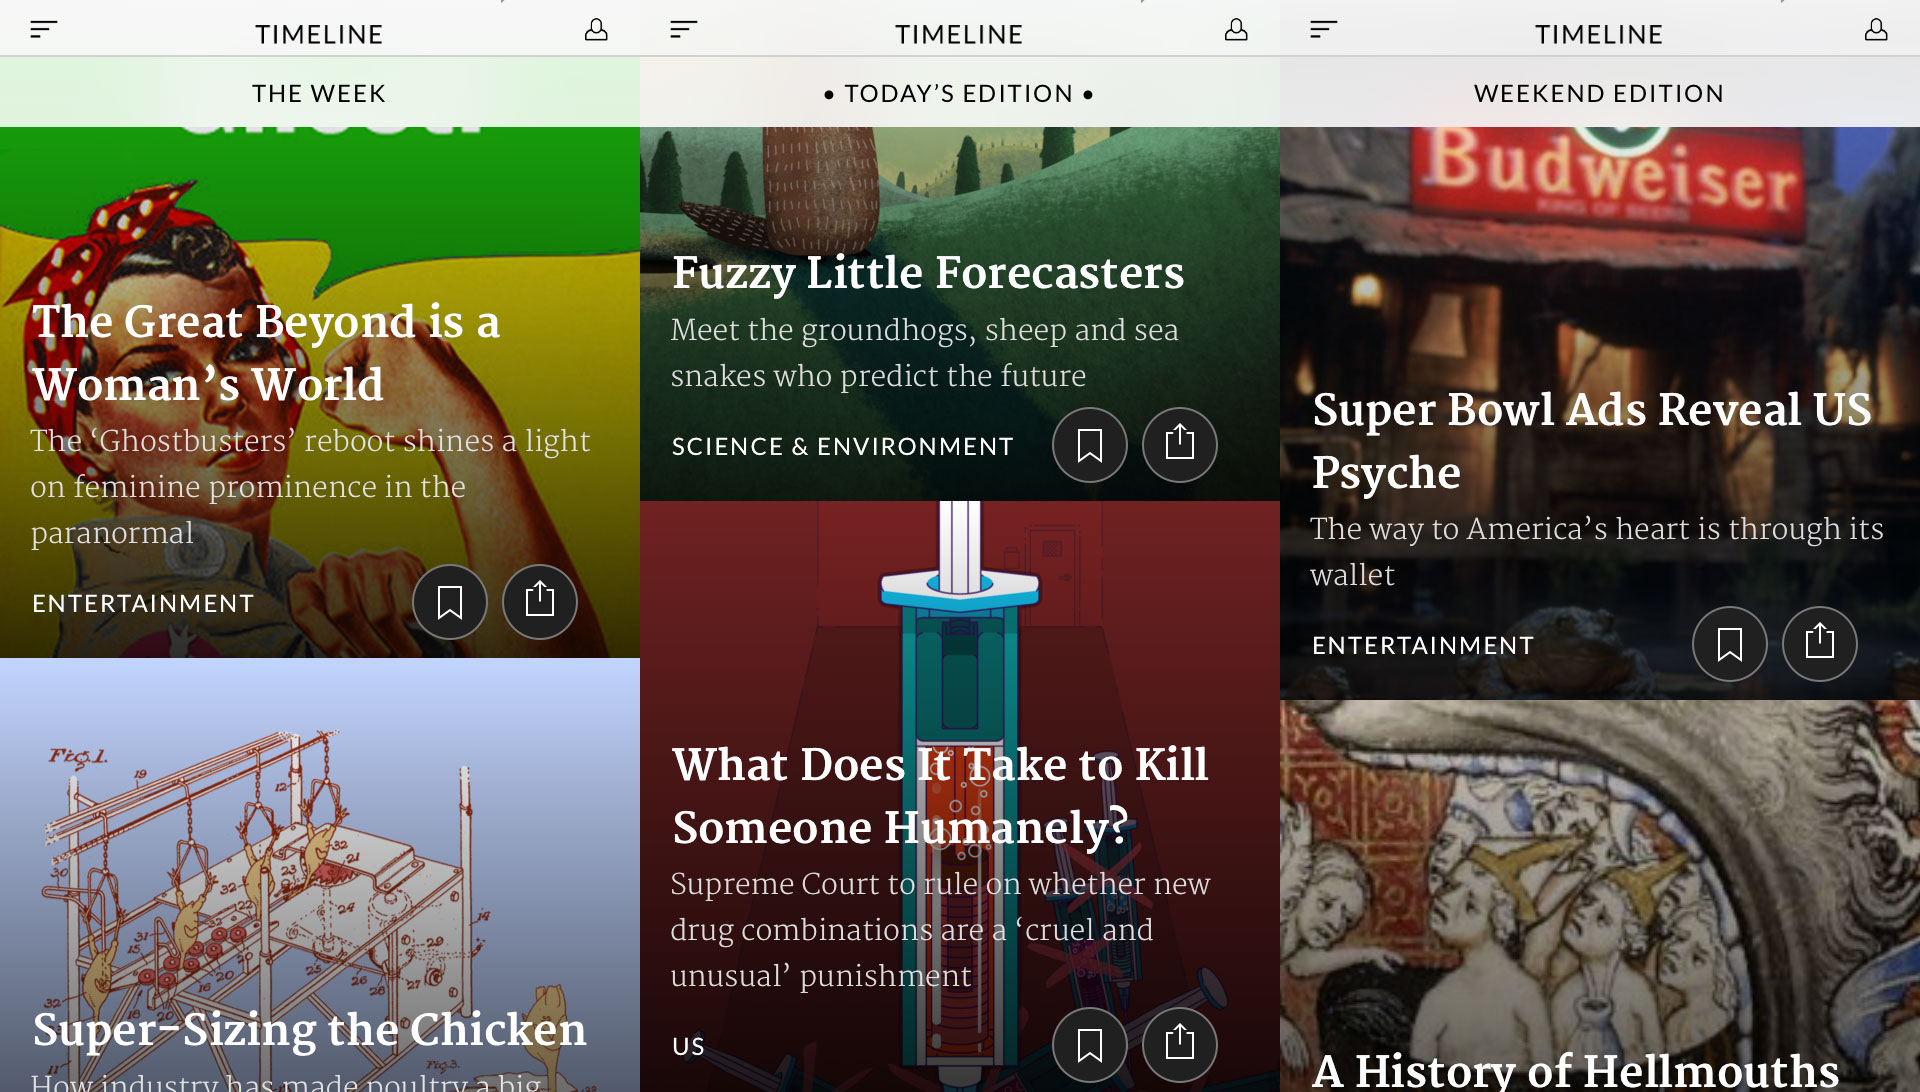 Screenshots from the homescreen of the Timeline app, where readers can scroll through the day's stories